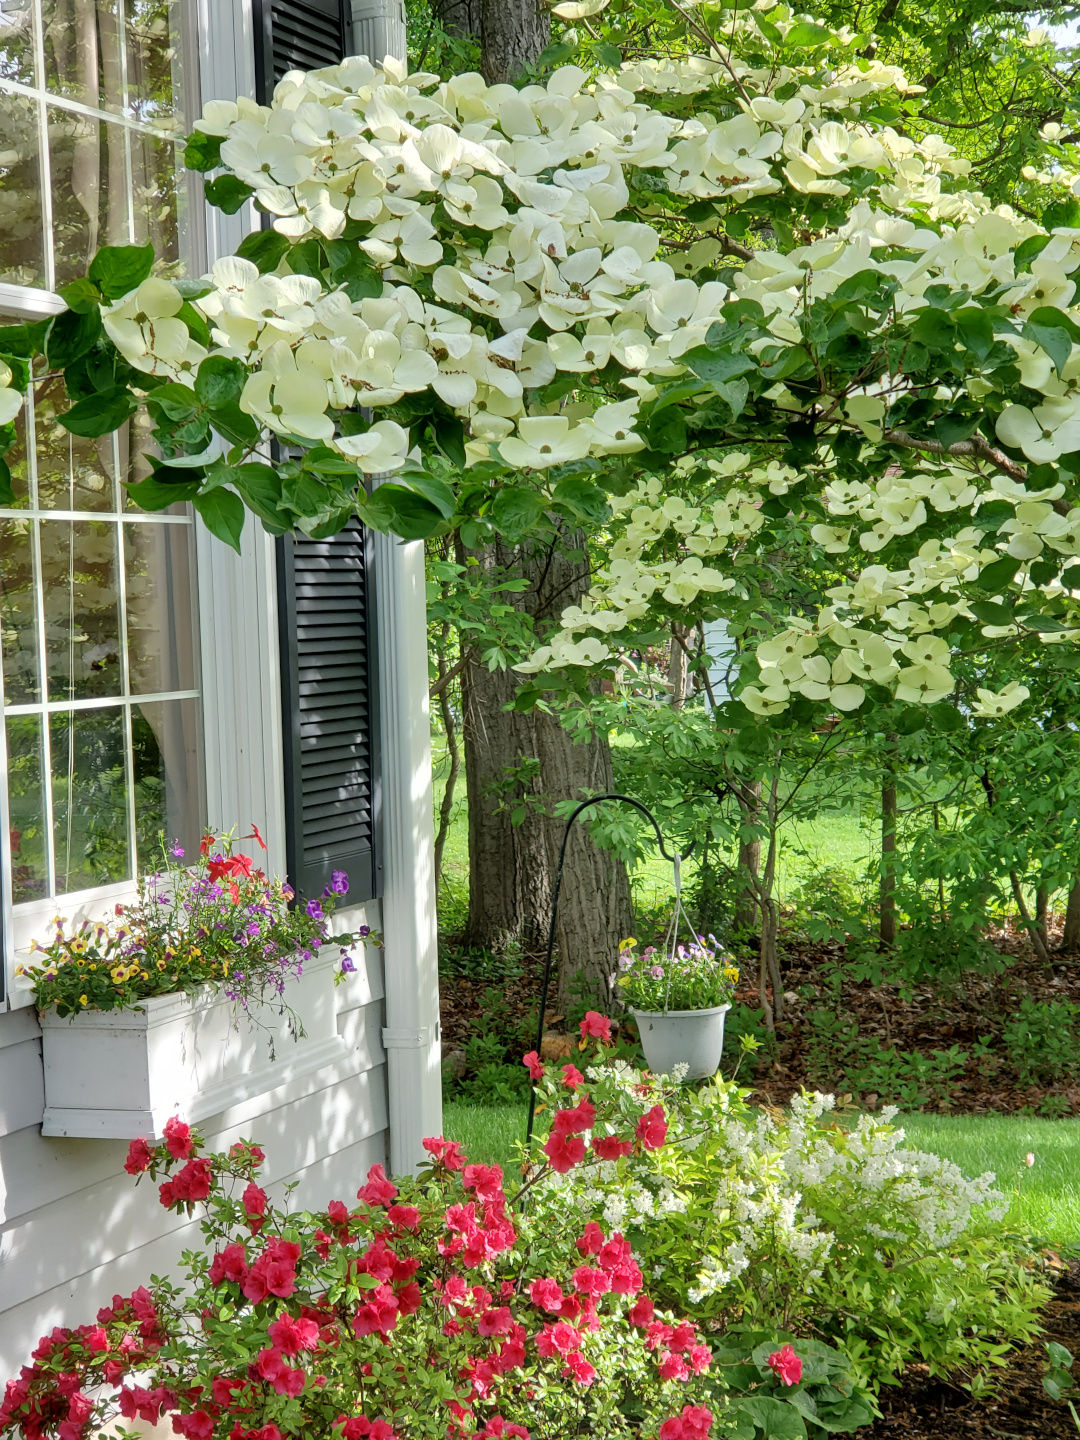 Blooming trees and shrubs by the side of a house